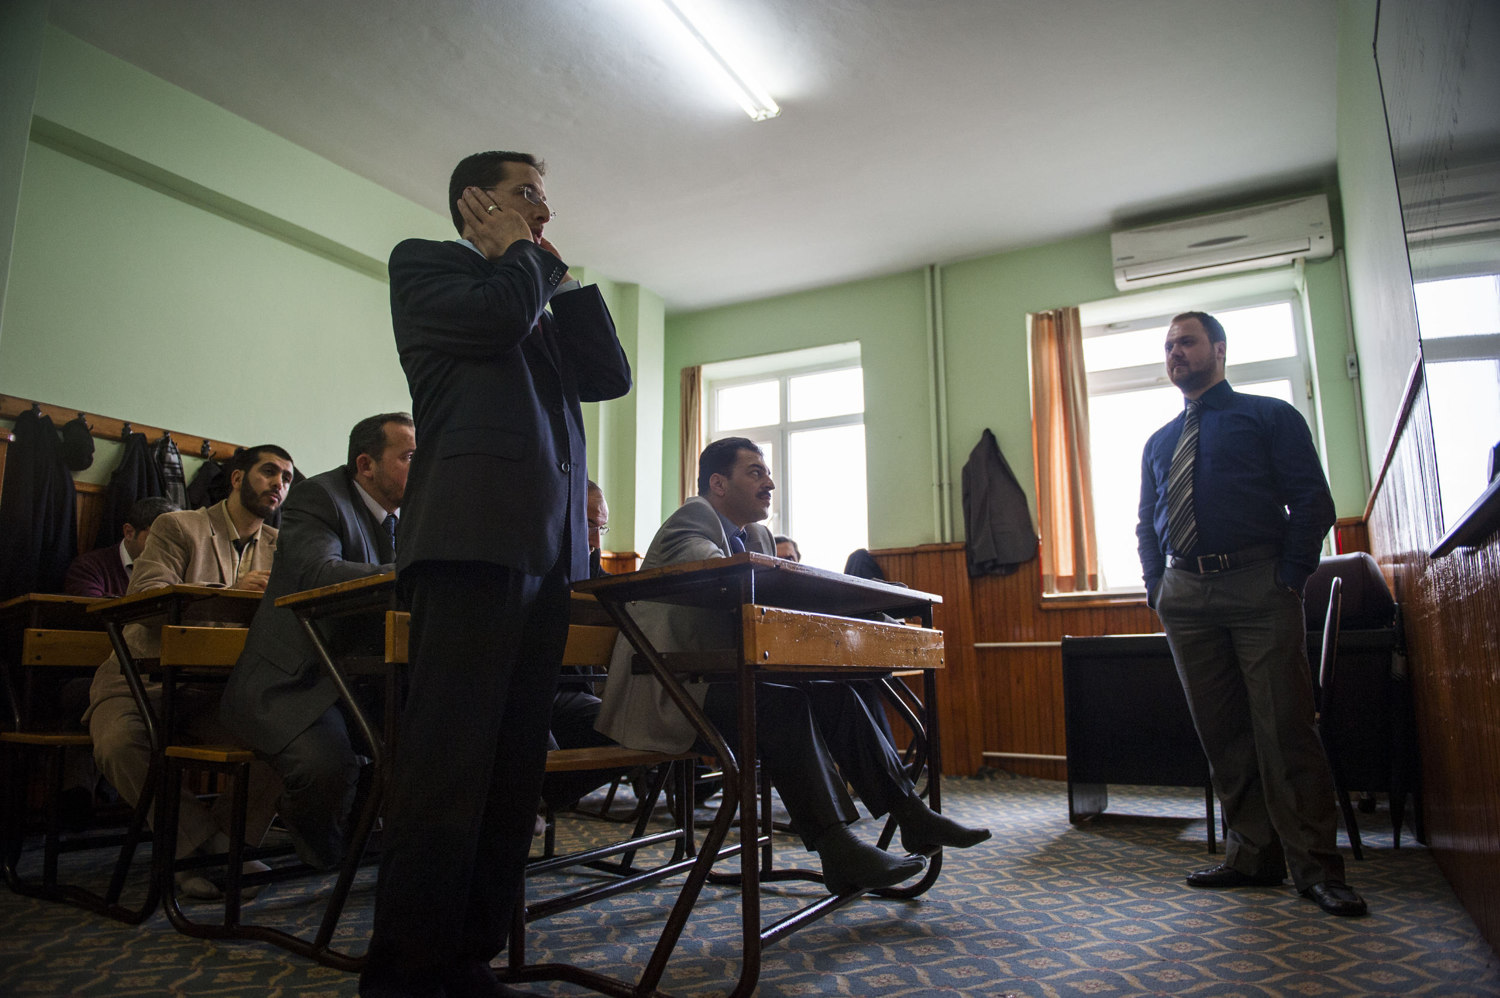 Fatıh Çağdaş demonstrates an azan for the class. Imams and other religions scholars attend Singing lessons held by the Beyoglu Müftülüğü in Istanbul Turkey. The lessons, taught by Fikret Yasin are held twice a week for an average of 20 scholars.